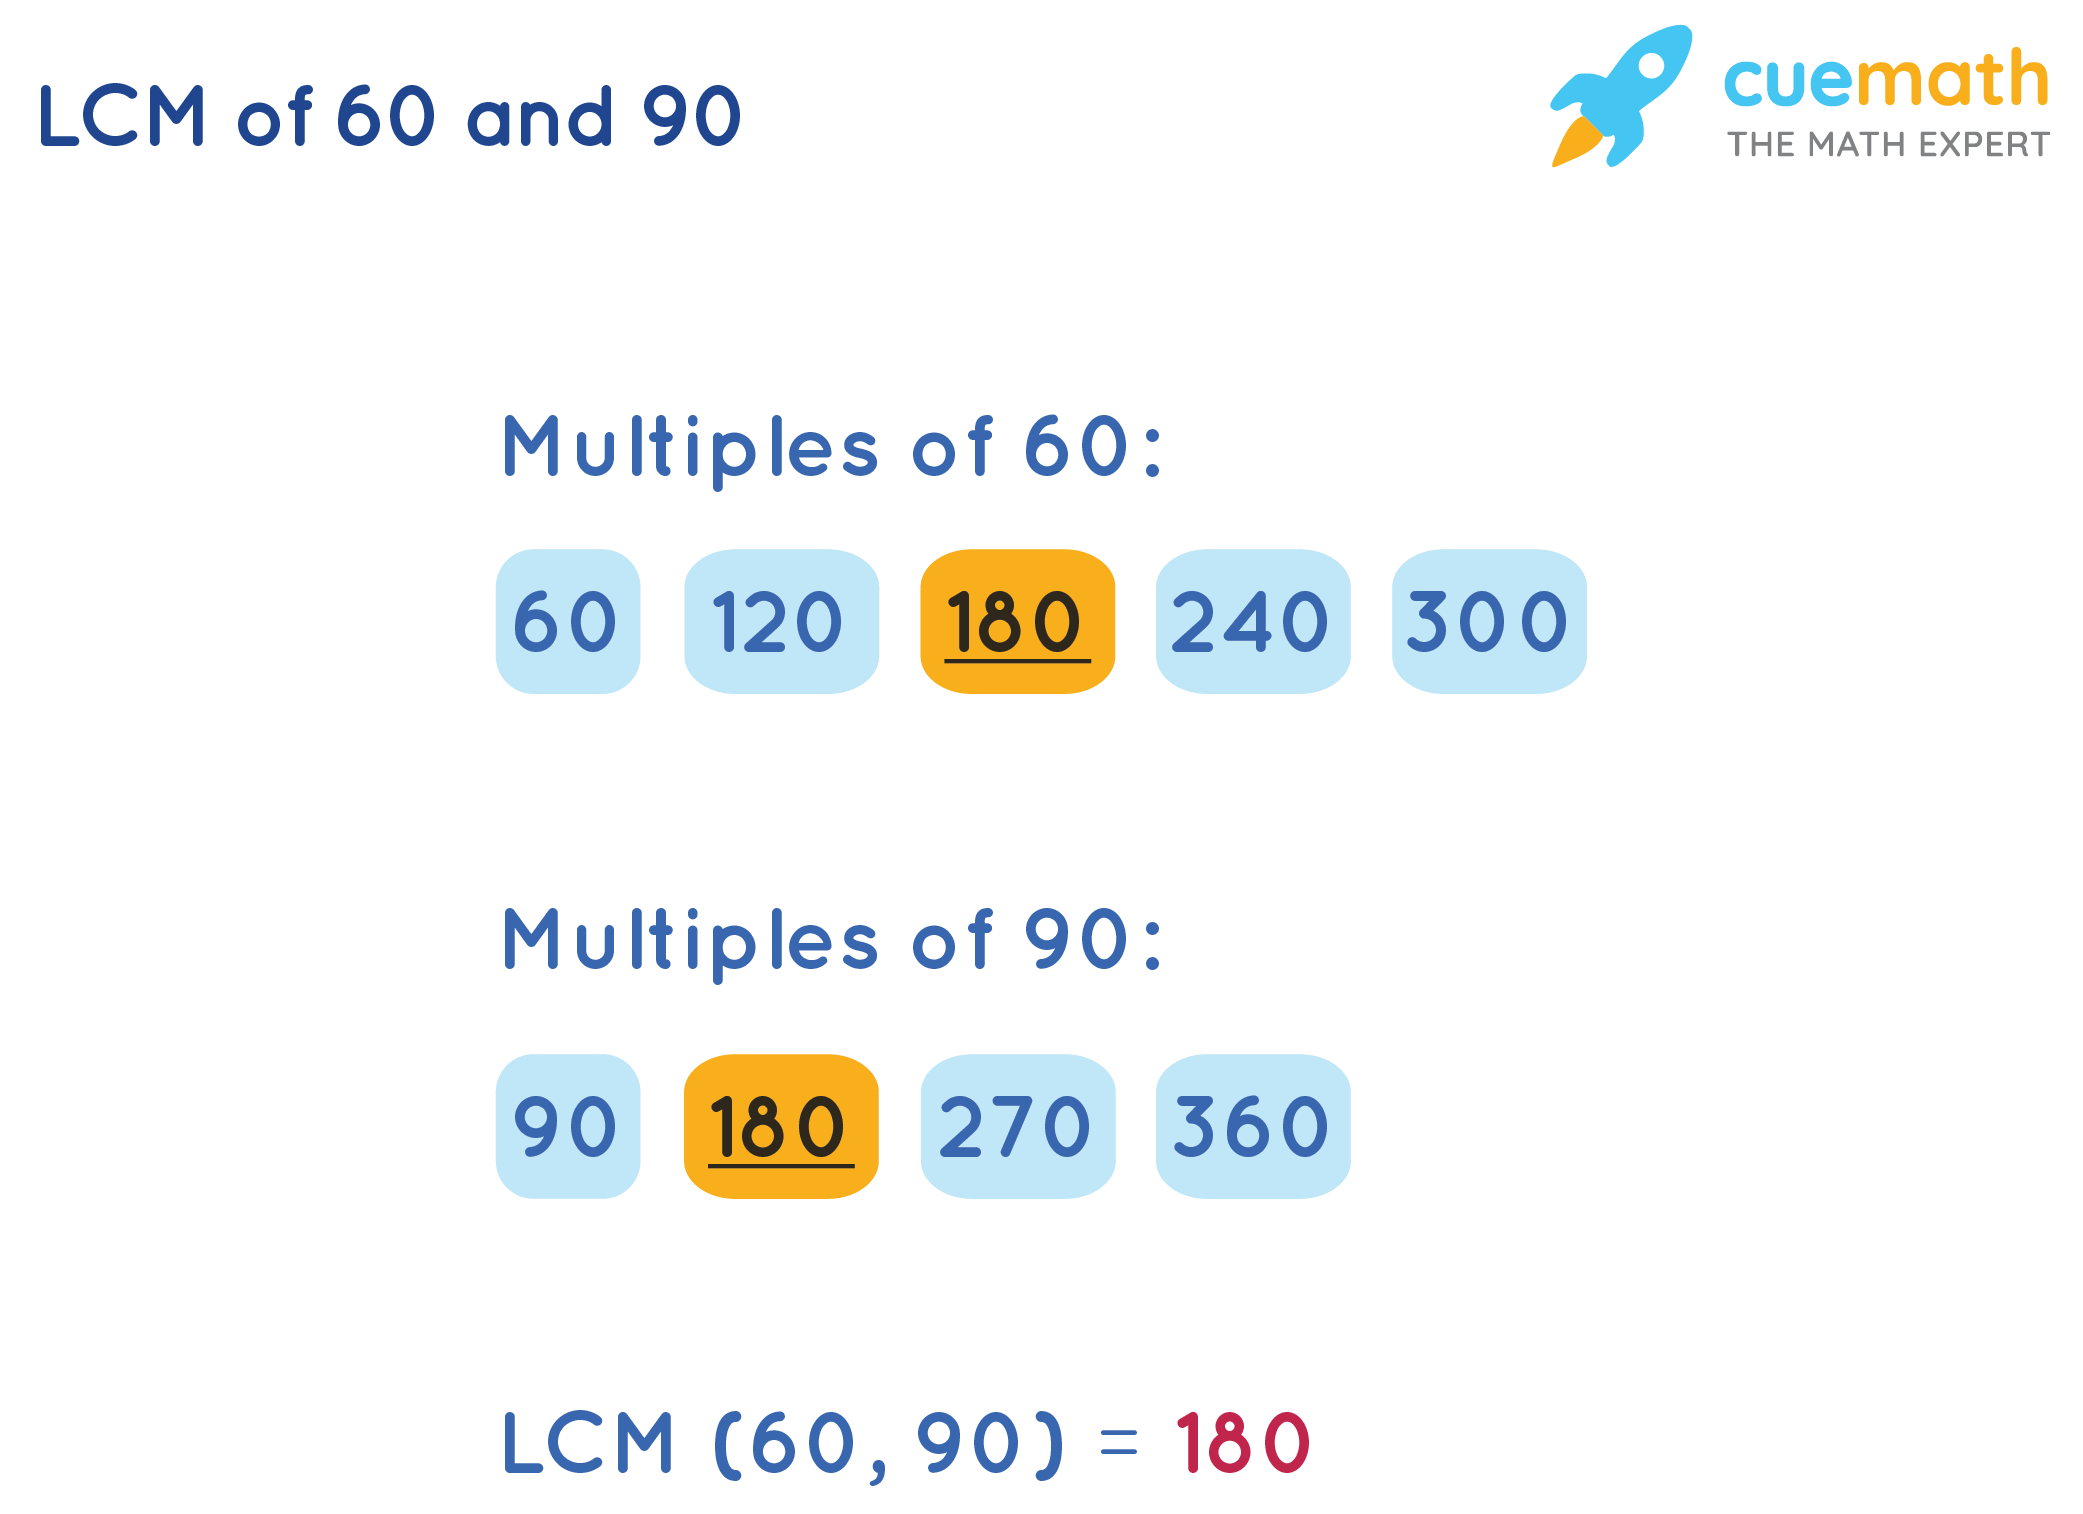 Listing Multiples Method To Find LCM(60,90)